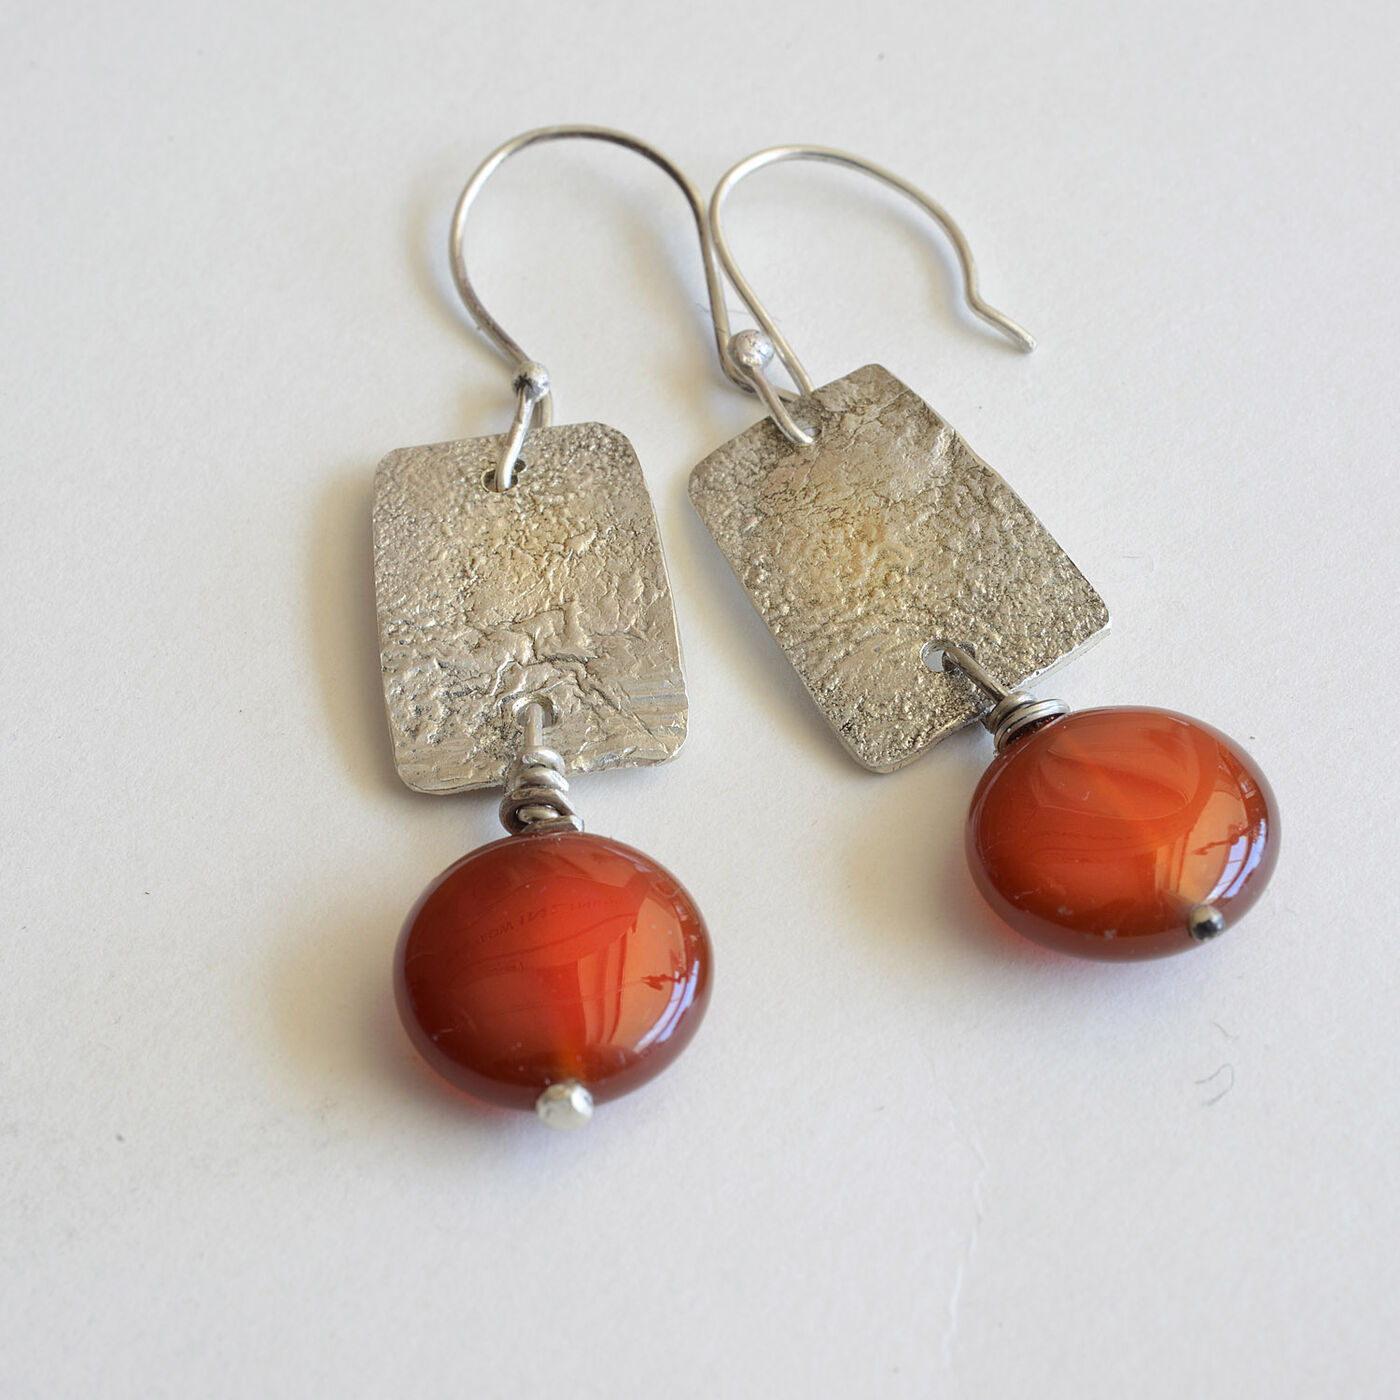 E18002 - Reticulated silver earrings with carnelian stones